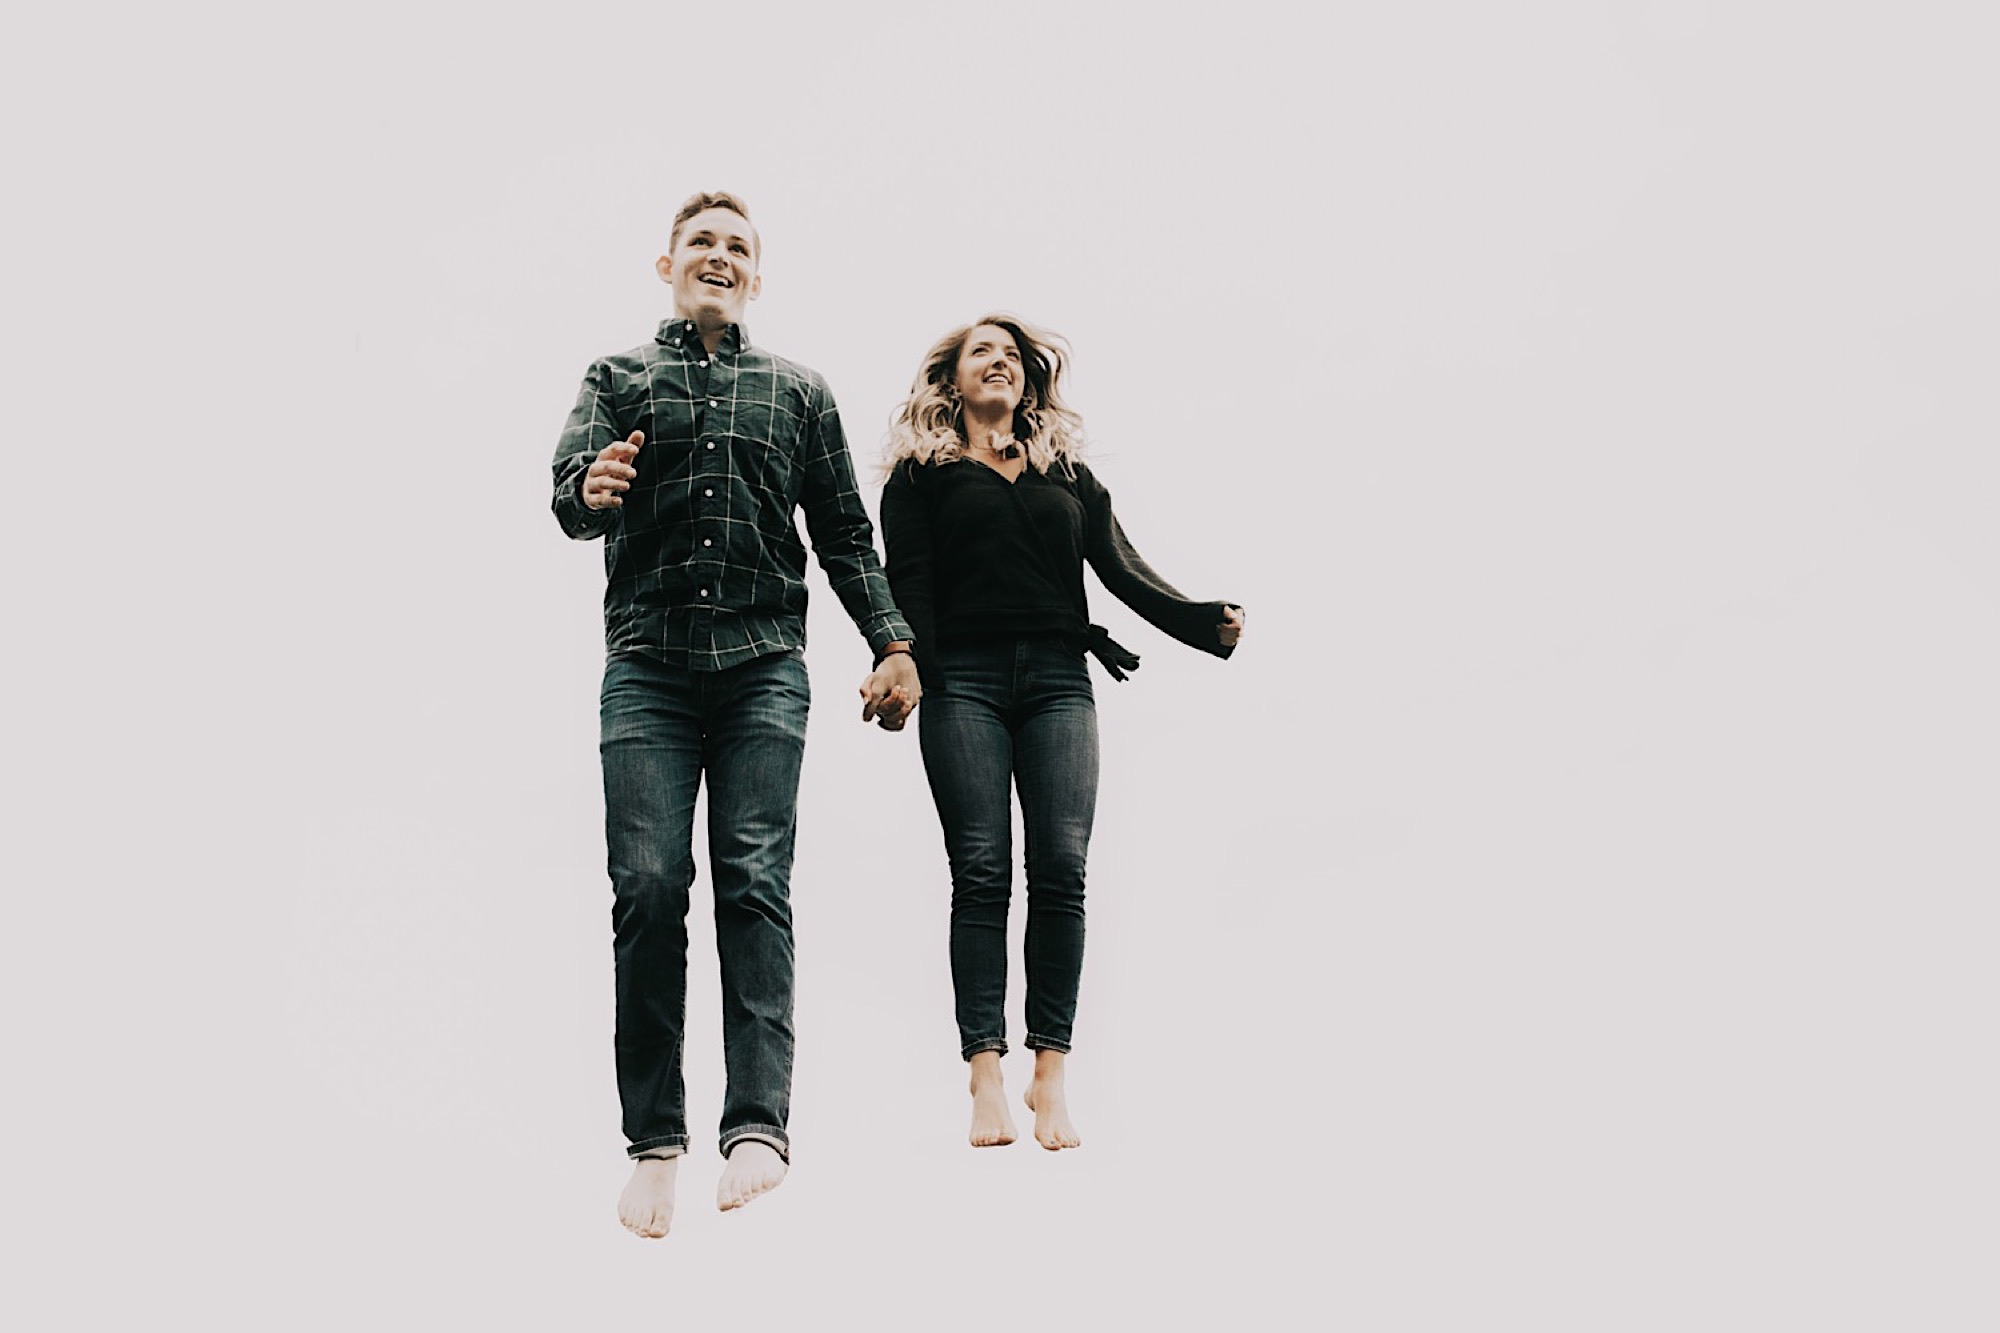 couple jumping through air during Des Moines engagement shoot